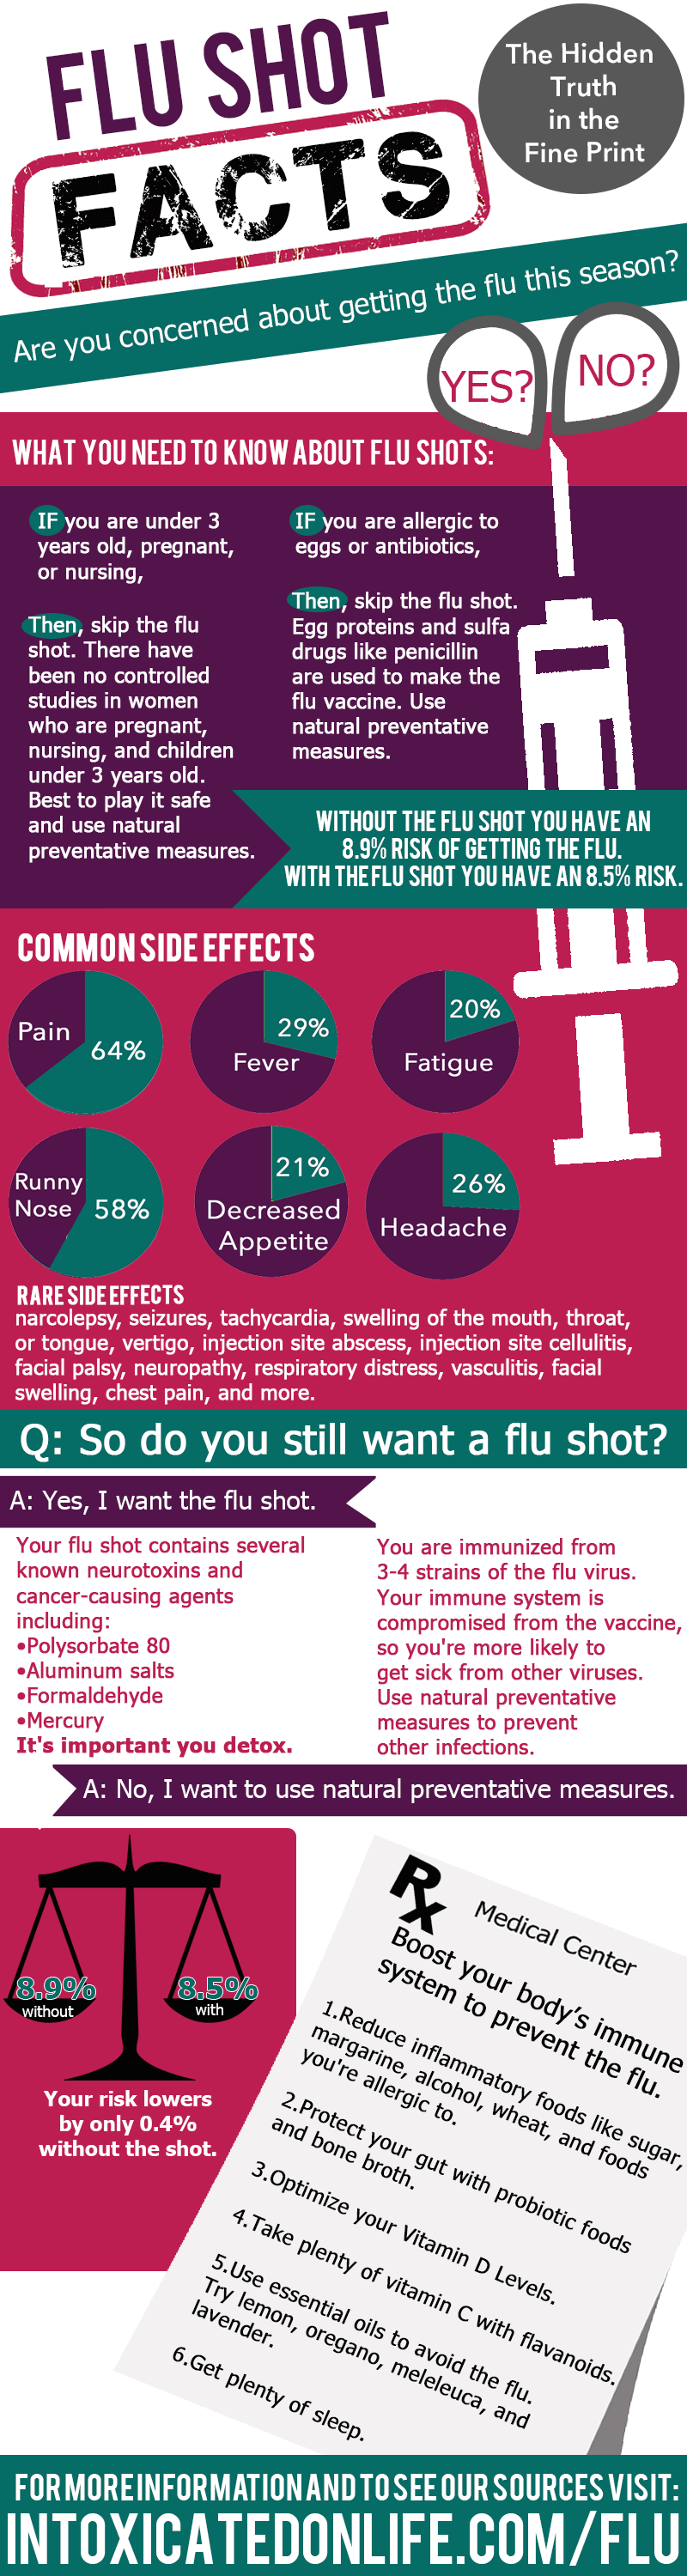 Flu Shot Facts: Hidden Truth in the Fine Print